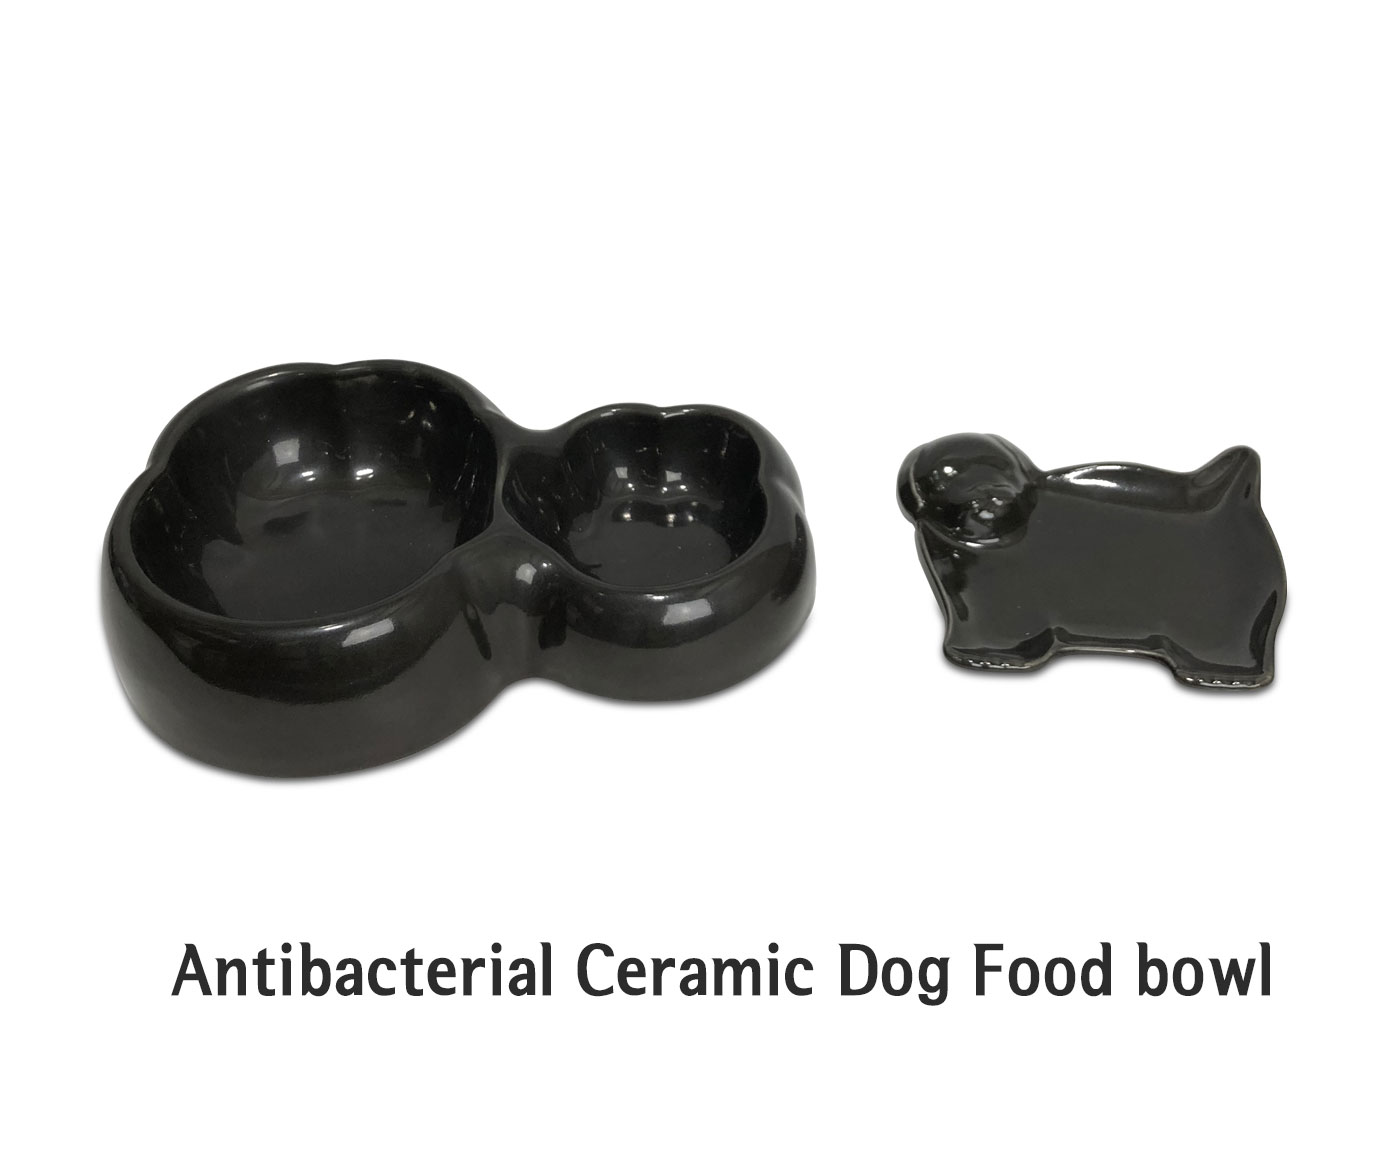 Antibacterial & Odor-free Dog Ceramic Bowl, Feeder, Food dish